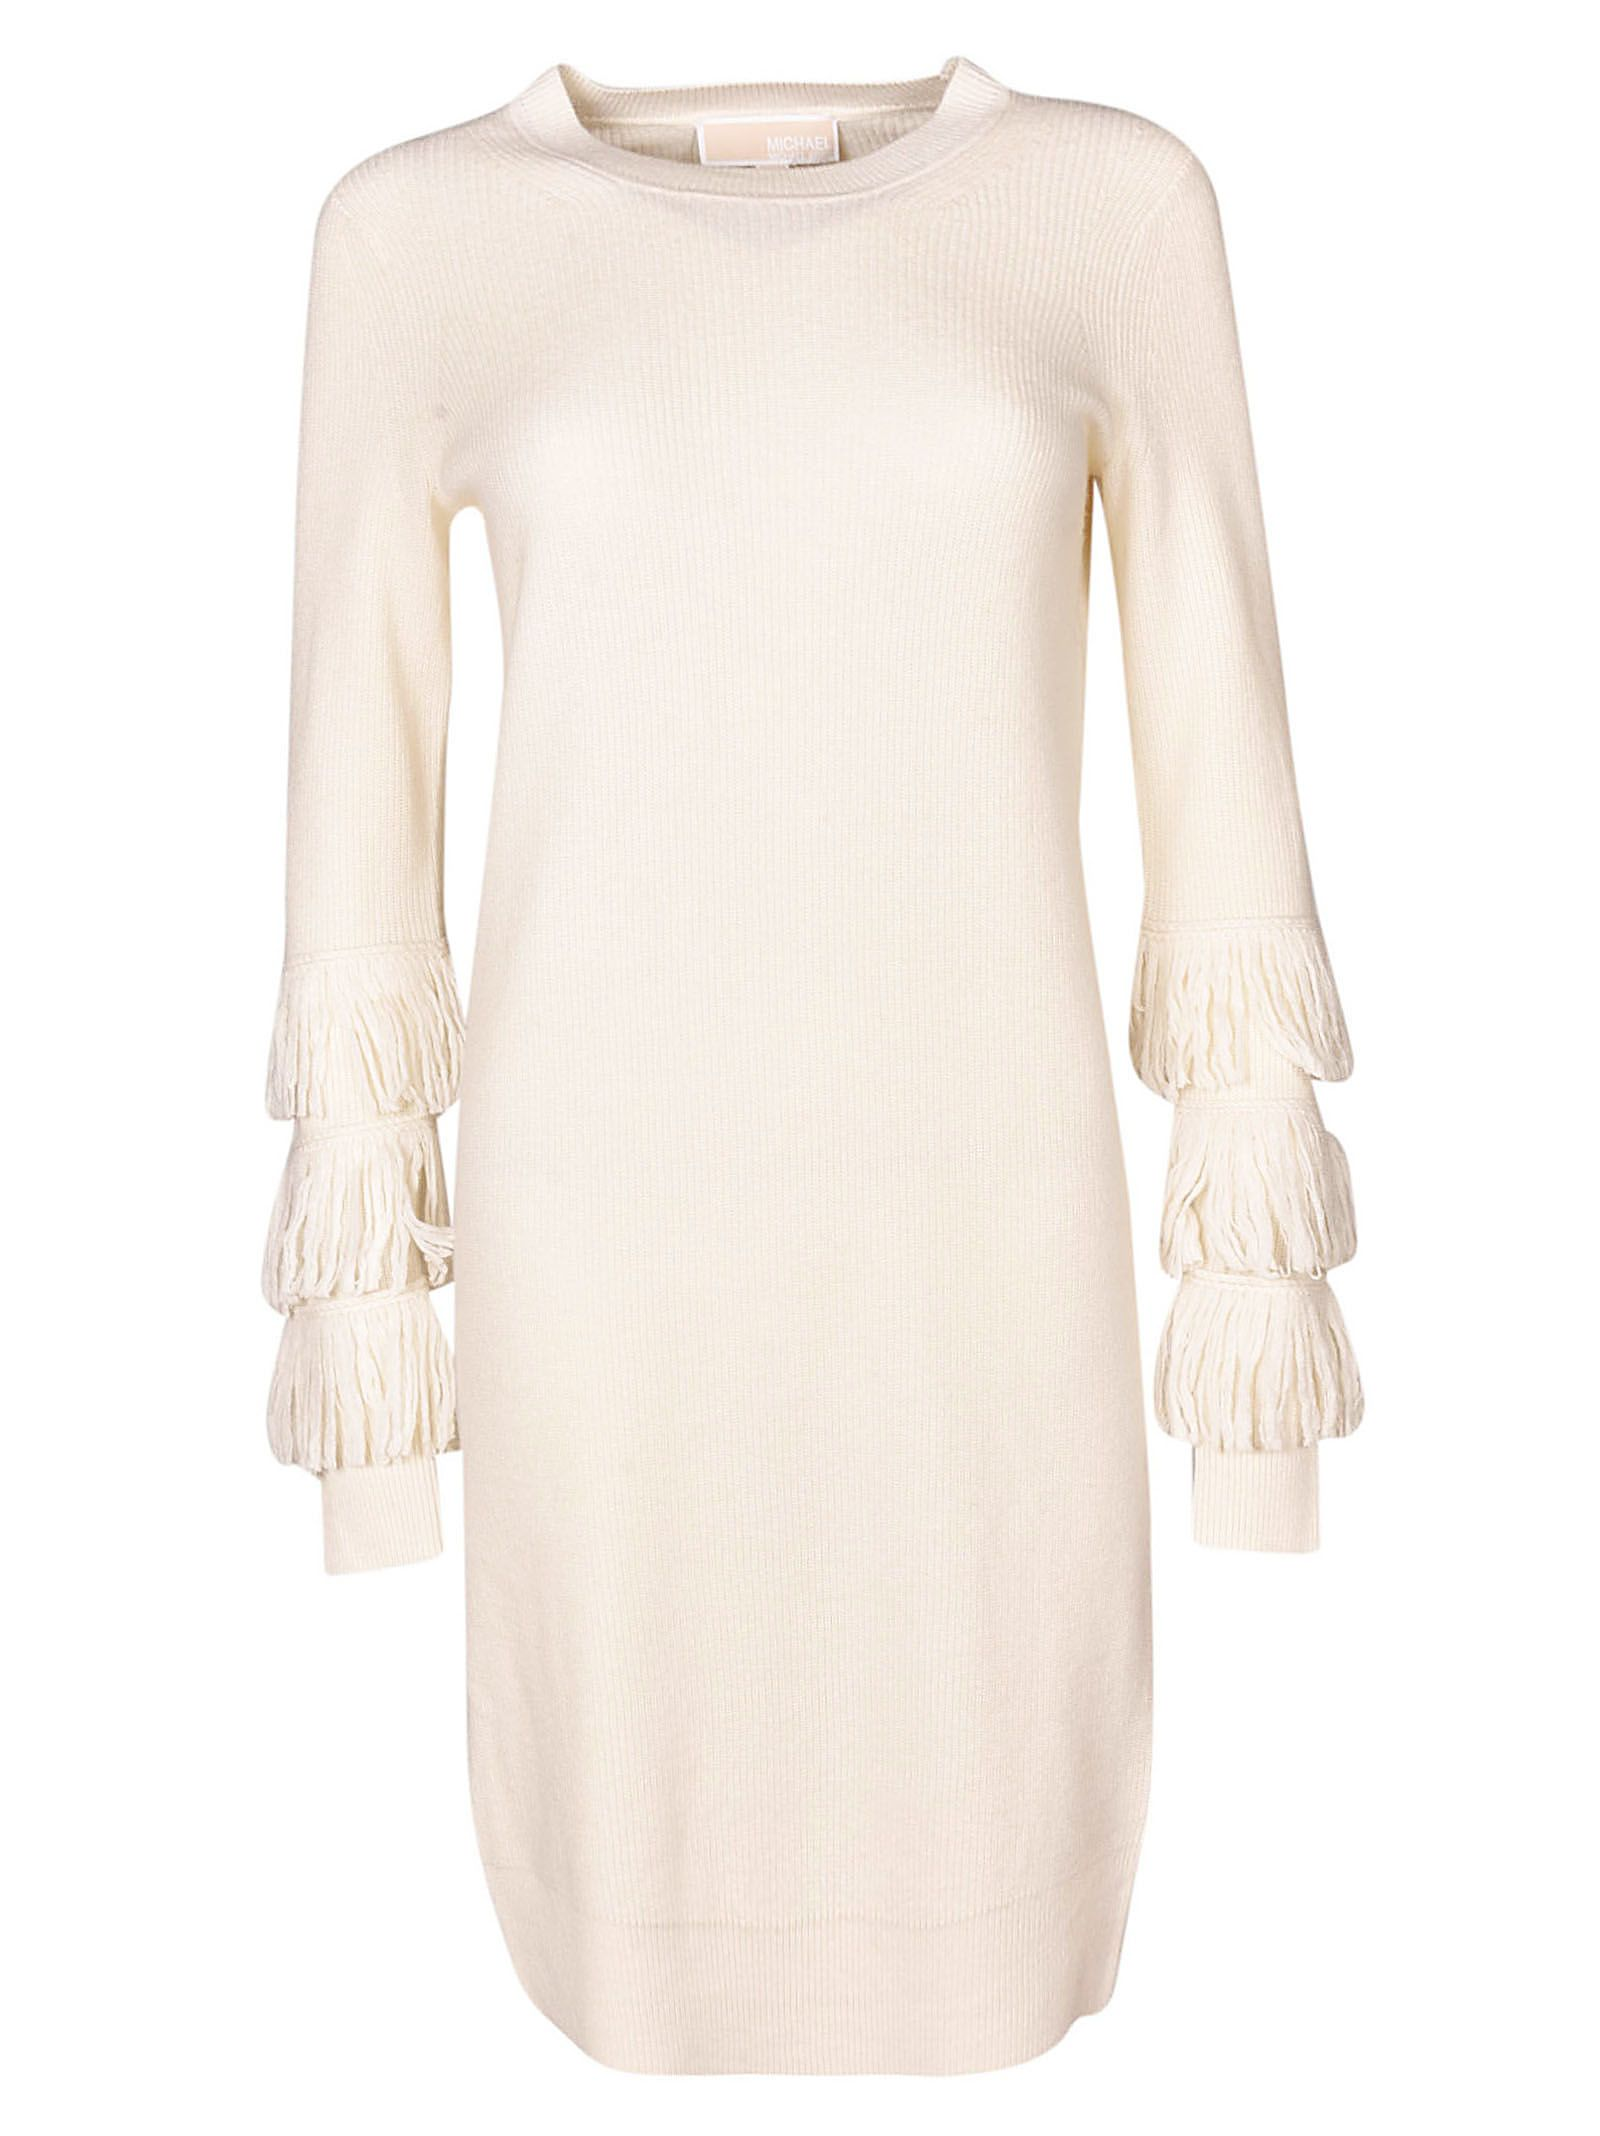 Michael Kors Tassel Sleeve Knitted Dress